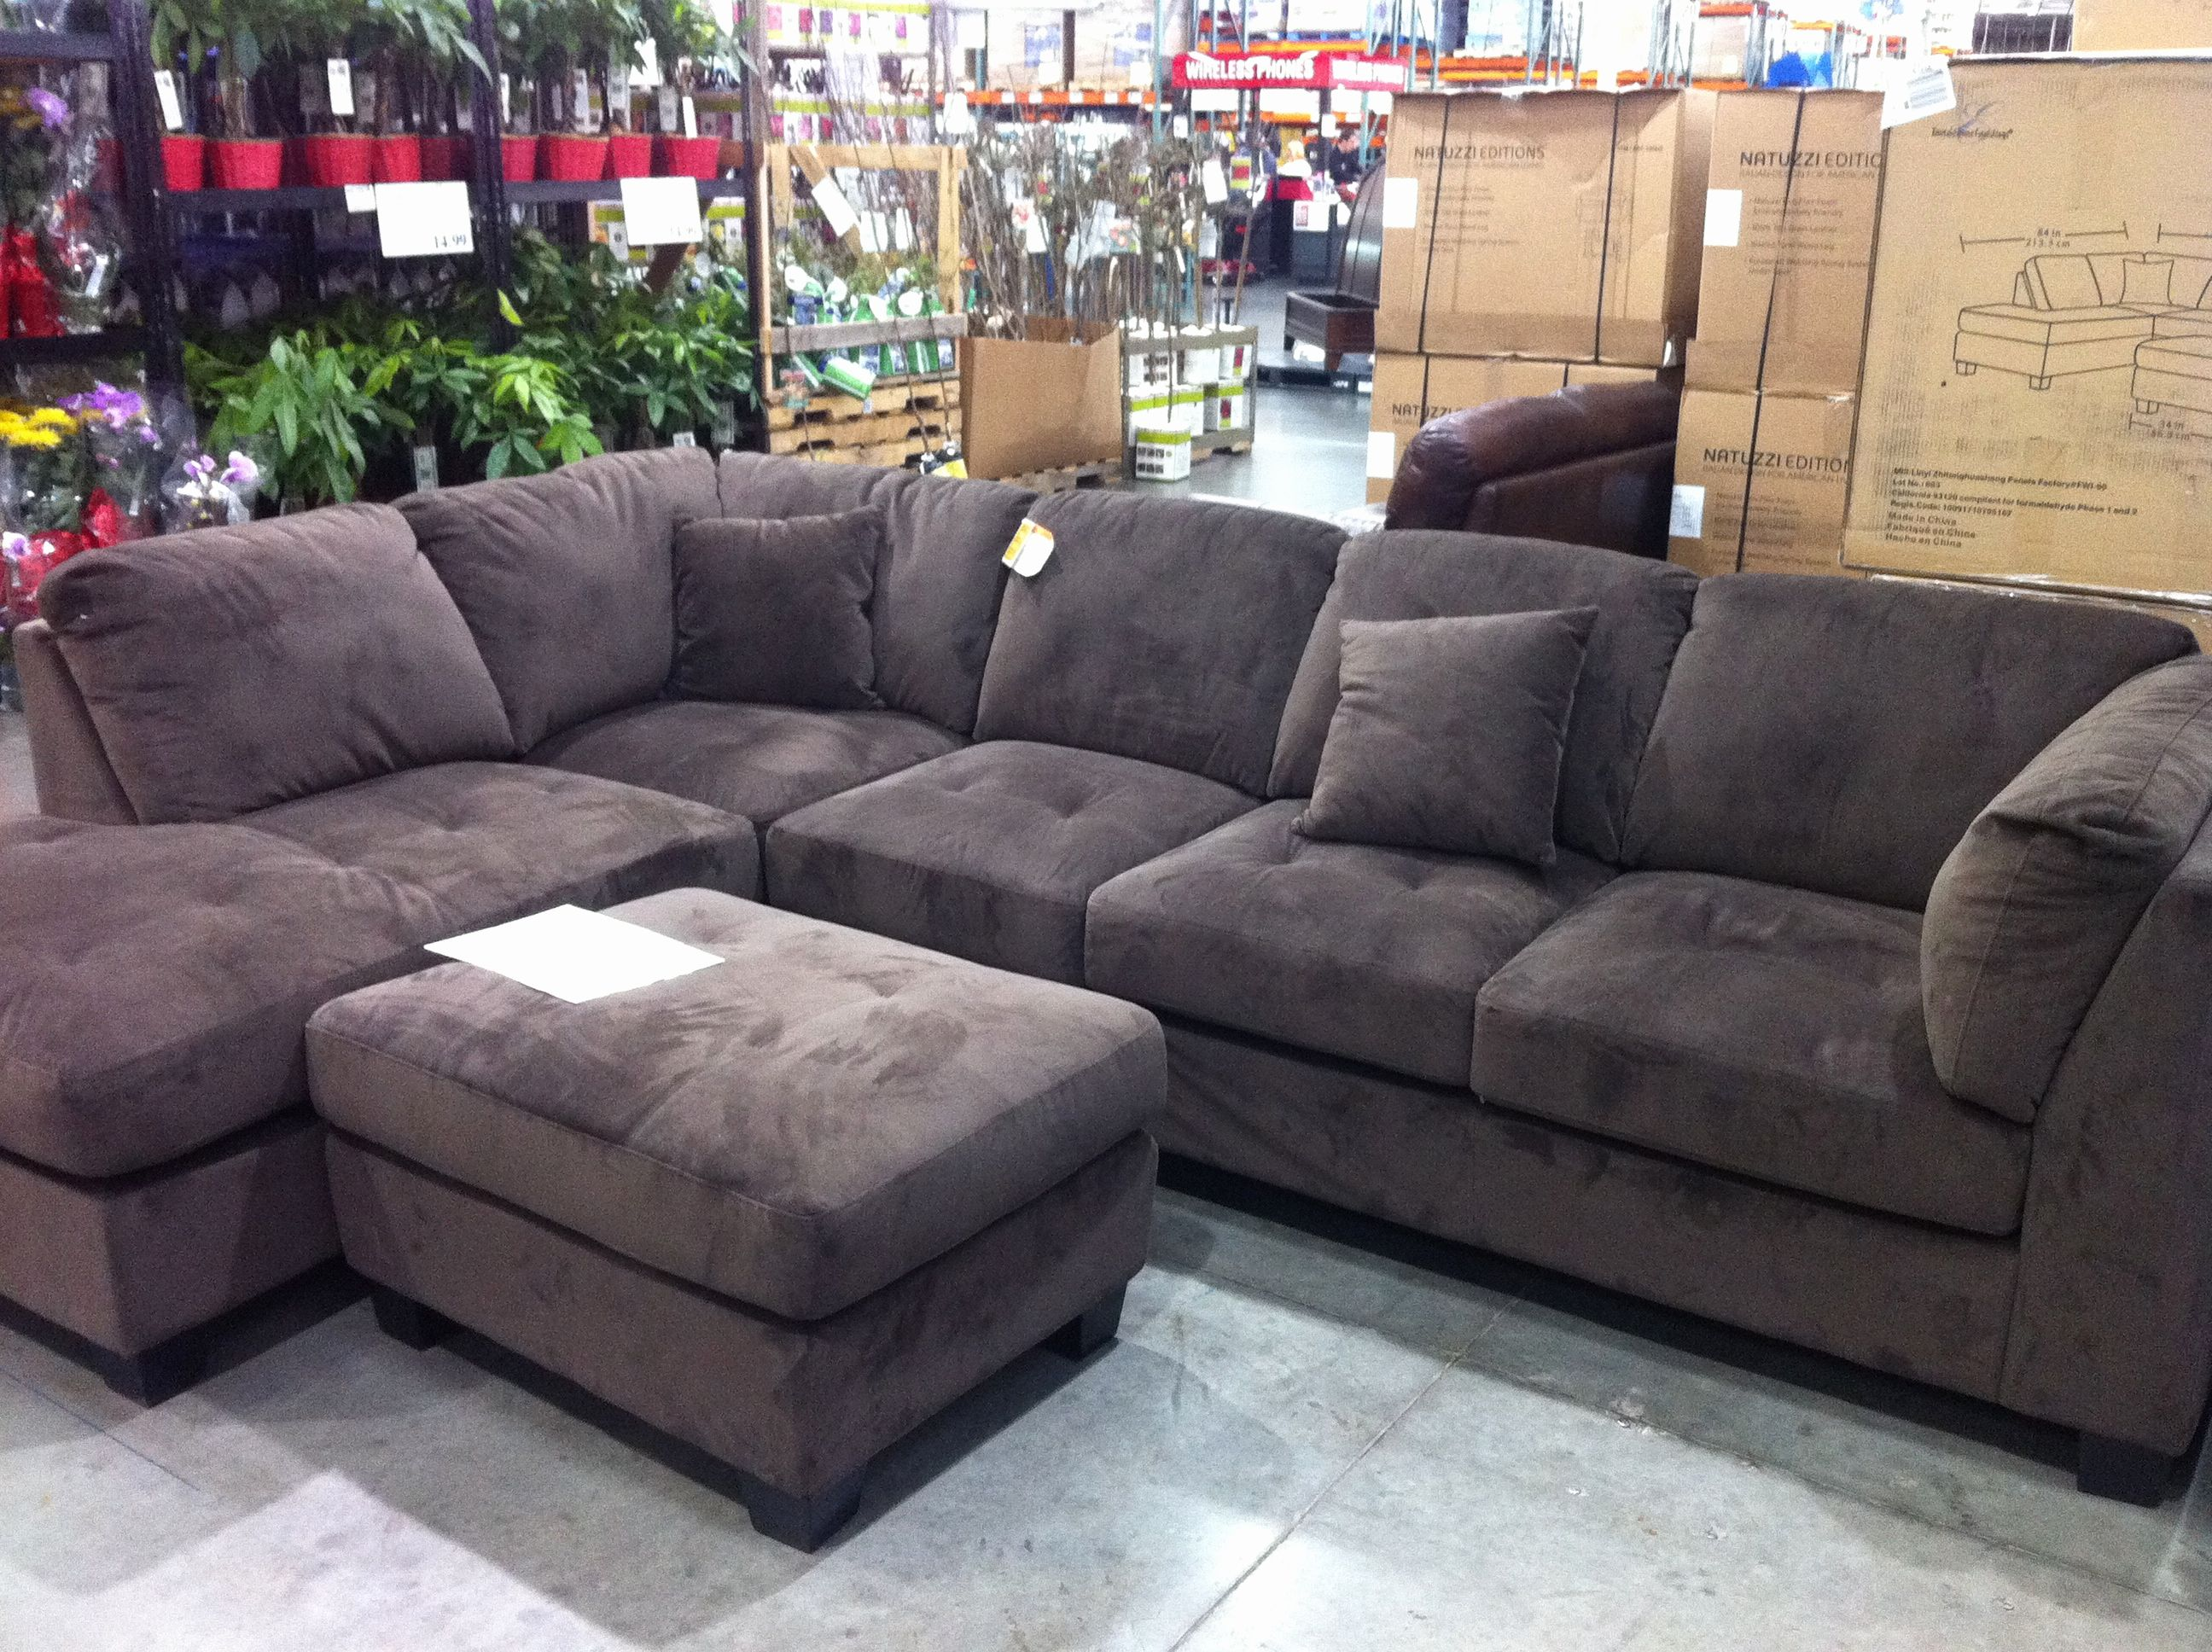 Awesome Costco Sofas Sectionals Pictures Costco Sofas Sectionals Best Of Sofas Magnificent Leathe Grey Sectional Sofa Sectional Sofa With Chaise Sectional Sofa